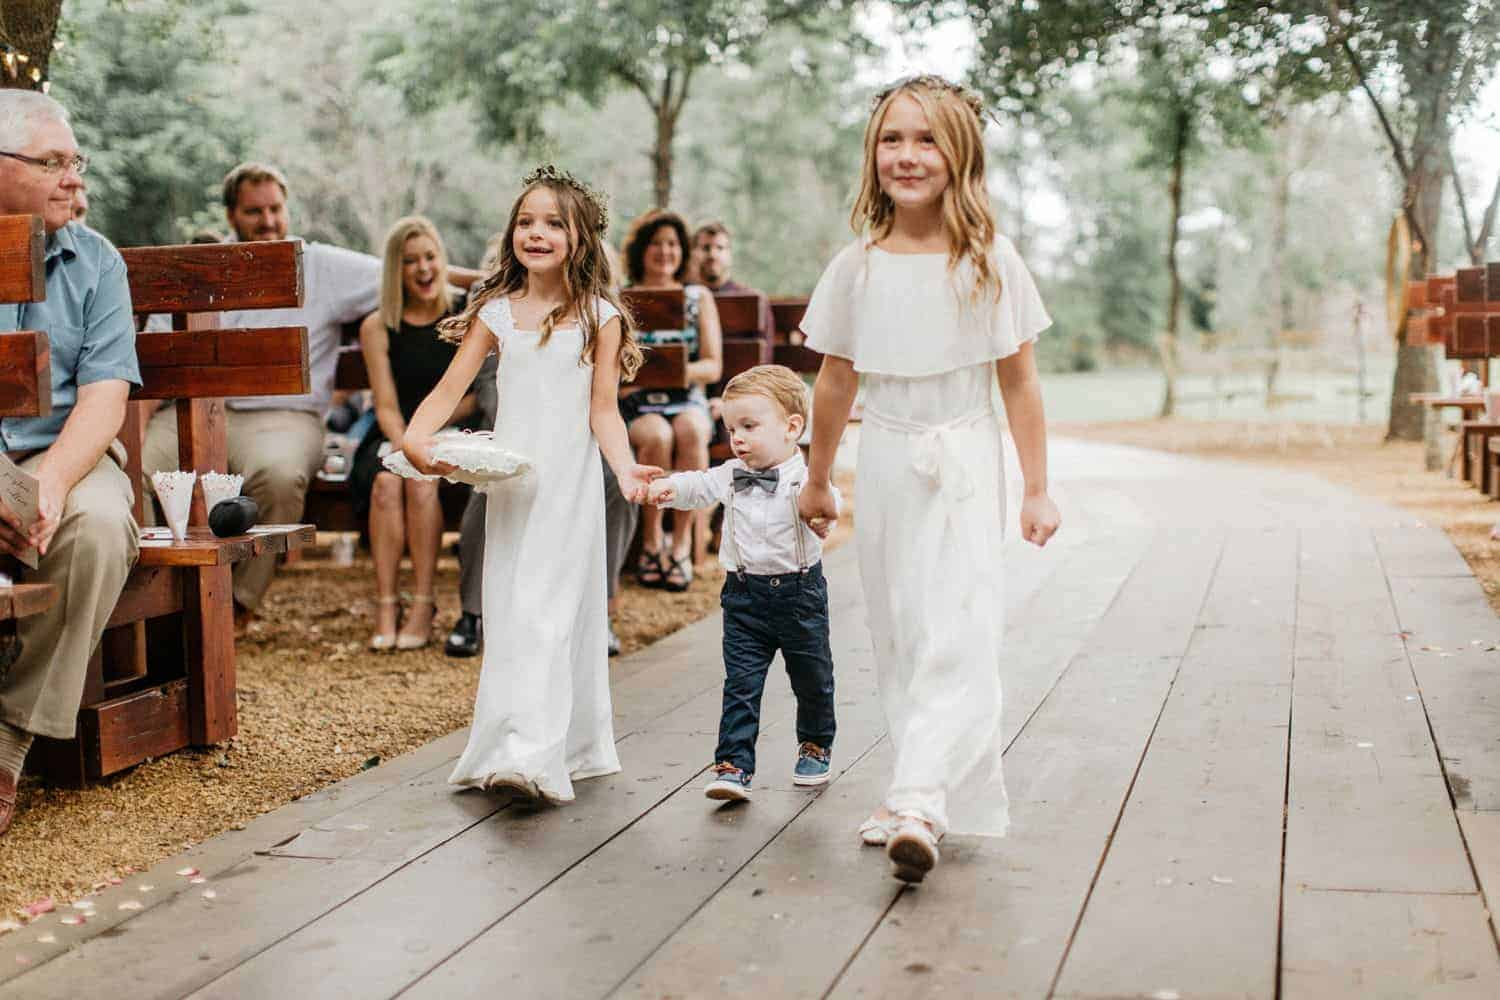 wedding ceremony flowers girls and page boy